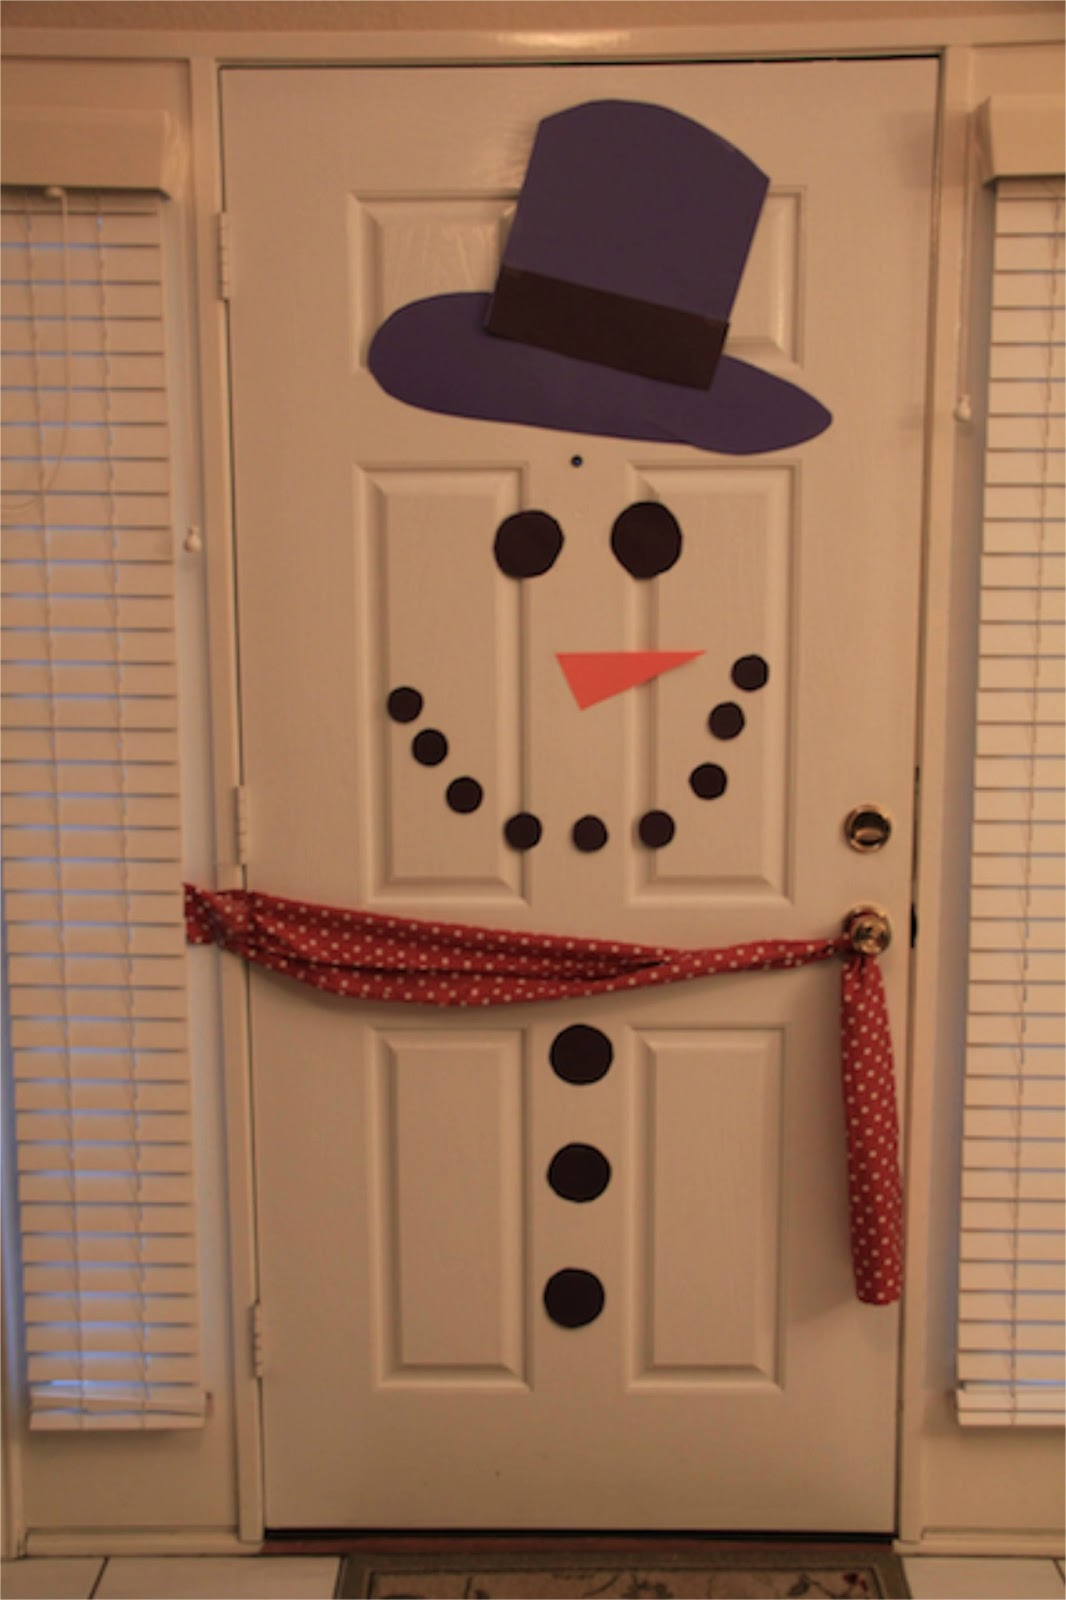 How To Make Frosty The Snowman | hairstylegalleries.com